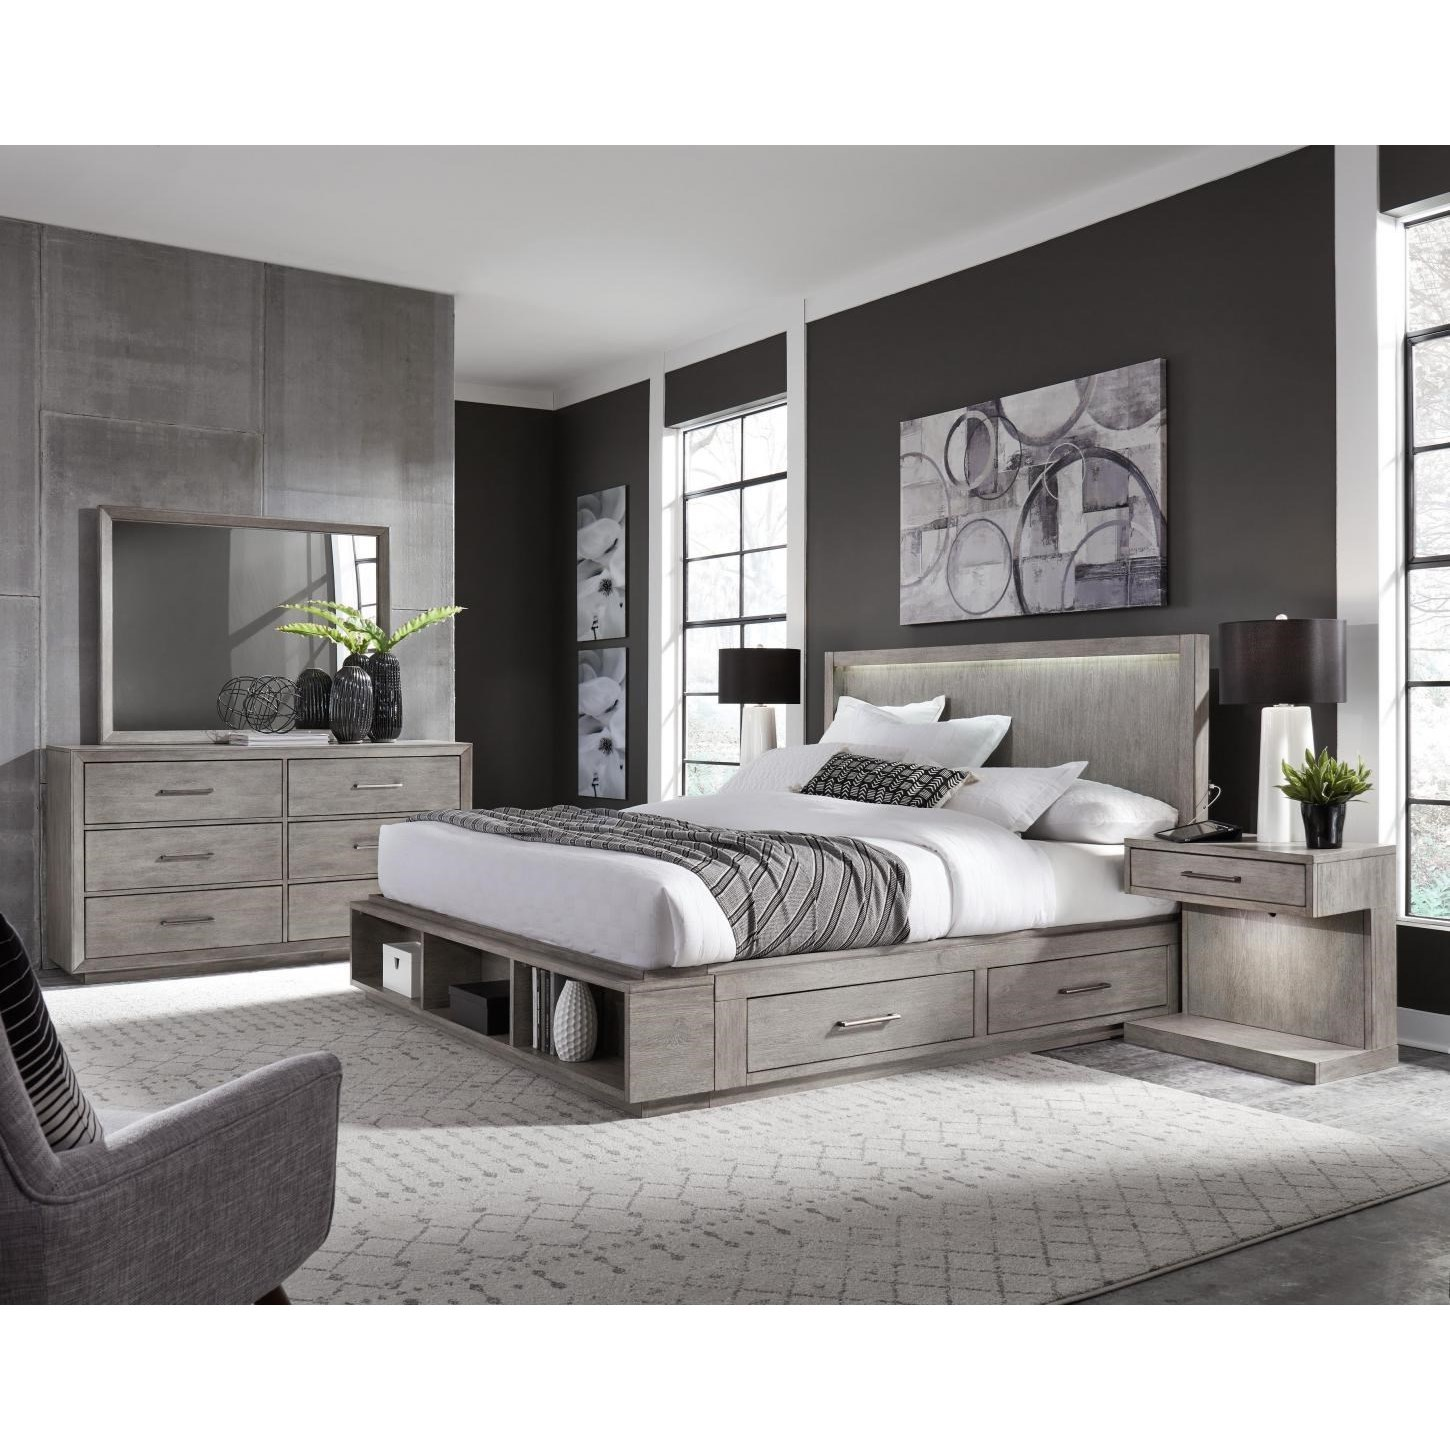 Platinum California King Bedroom Group by Aspenhome at Gill Brothers Furniture